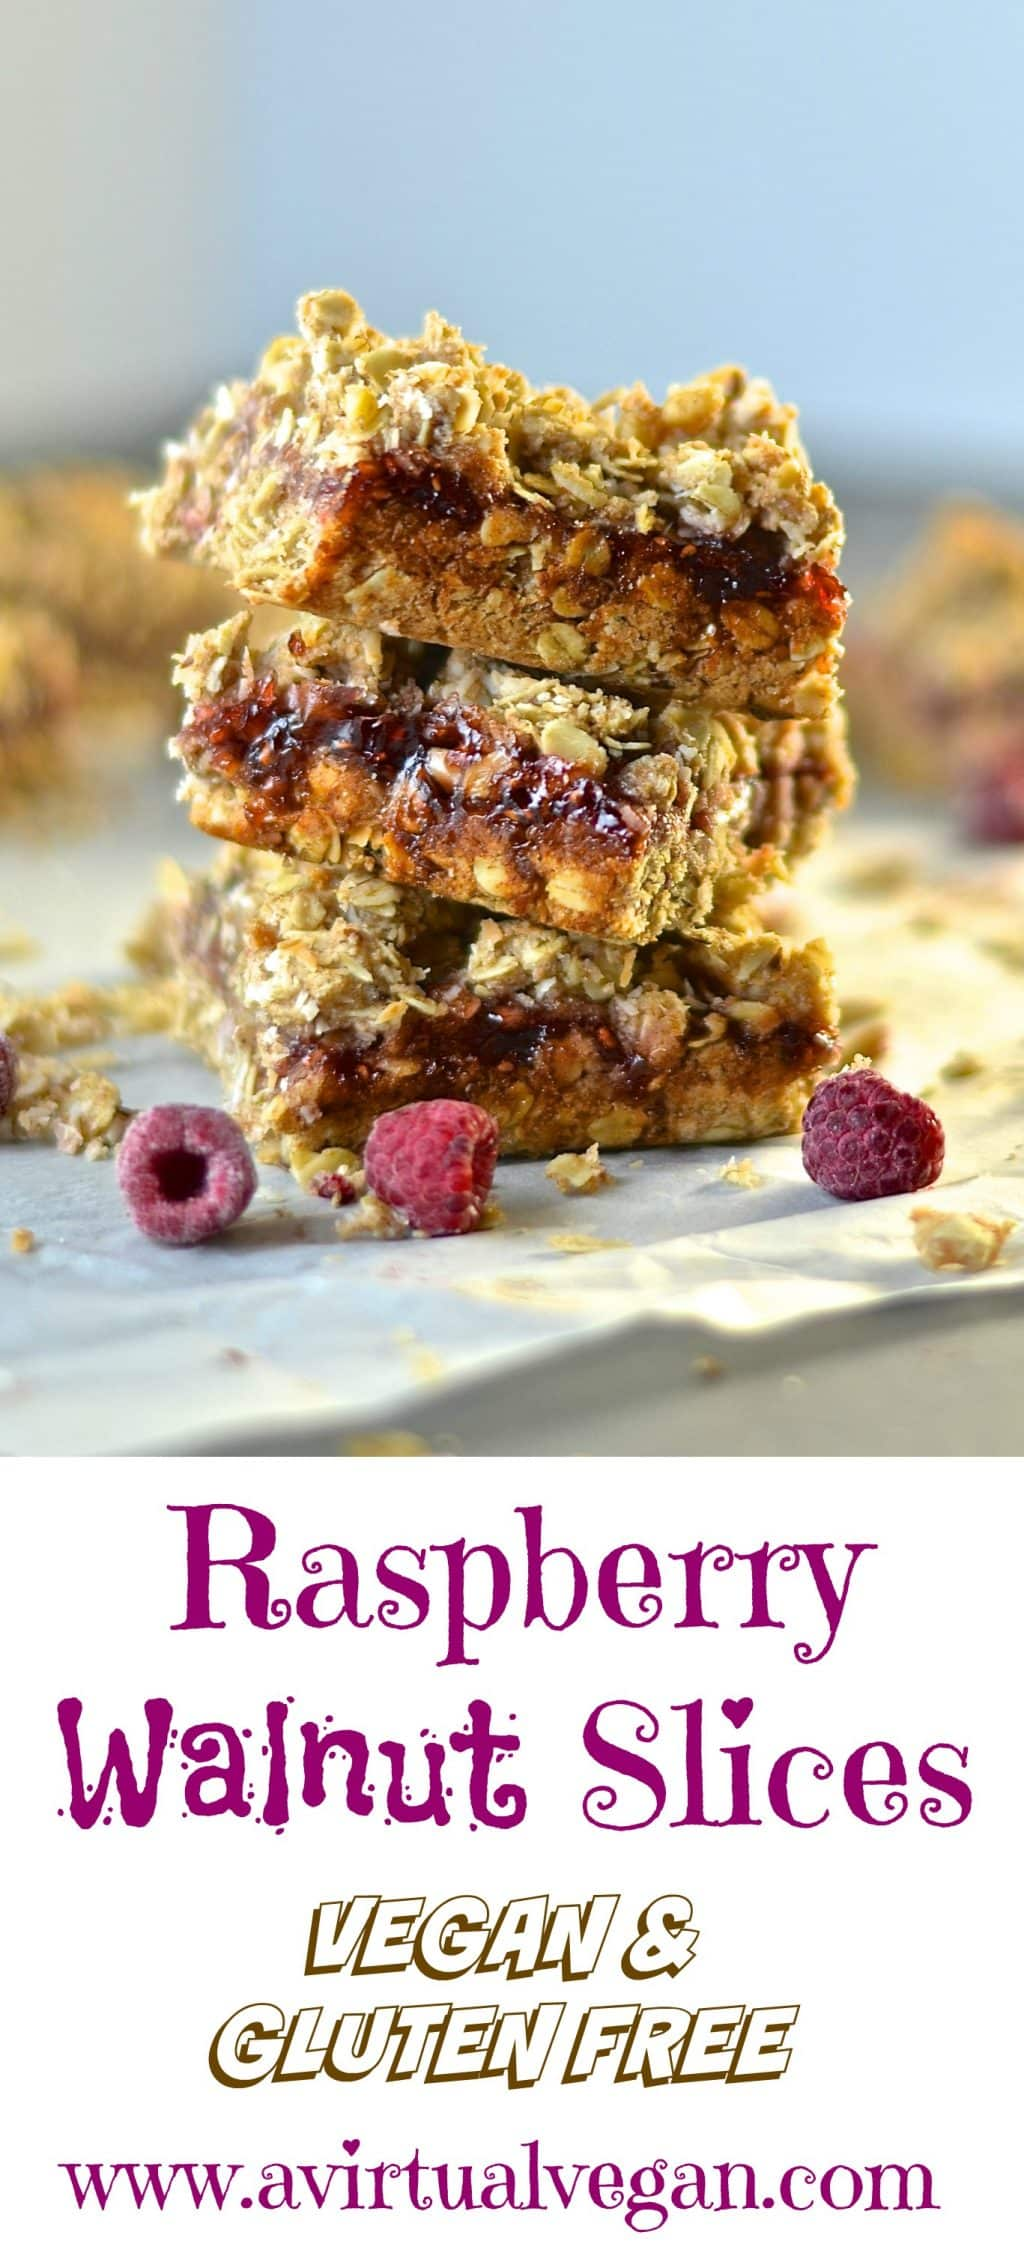 These raspberry walnut squares are incredibly quick & easy to make and with their crumbly, nutty, oaty layers & tangy, lip smacking raspberry jam, they are hard to resist!